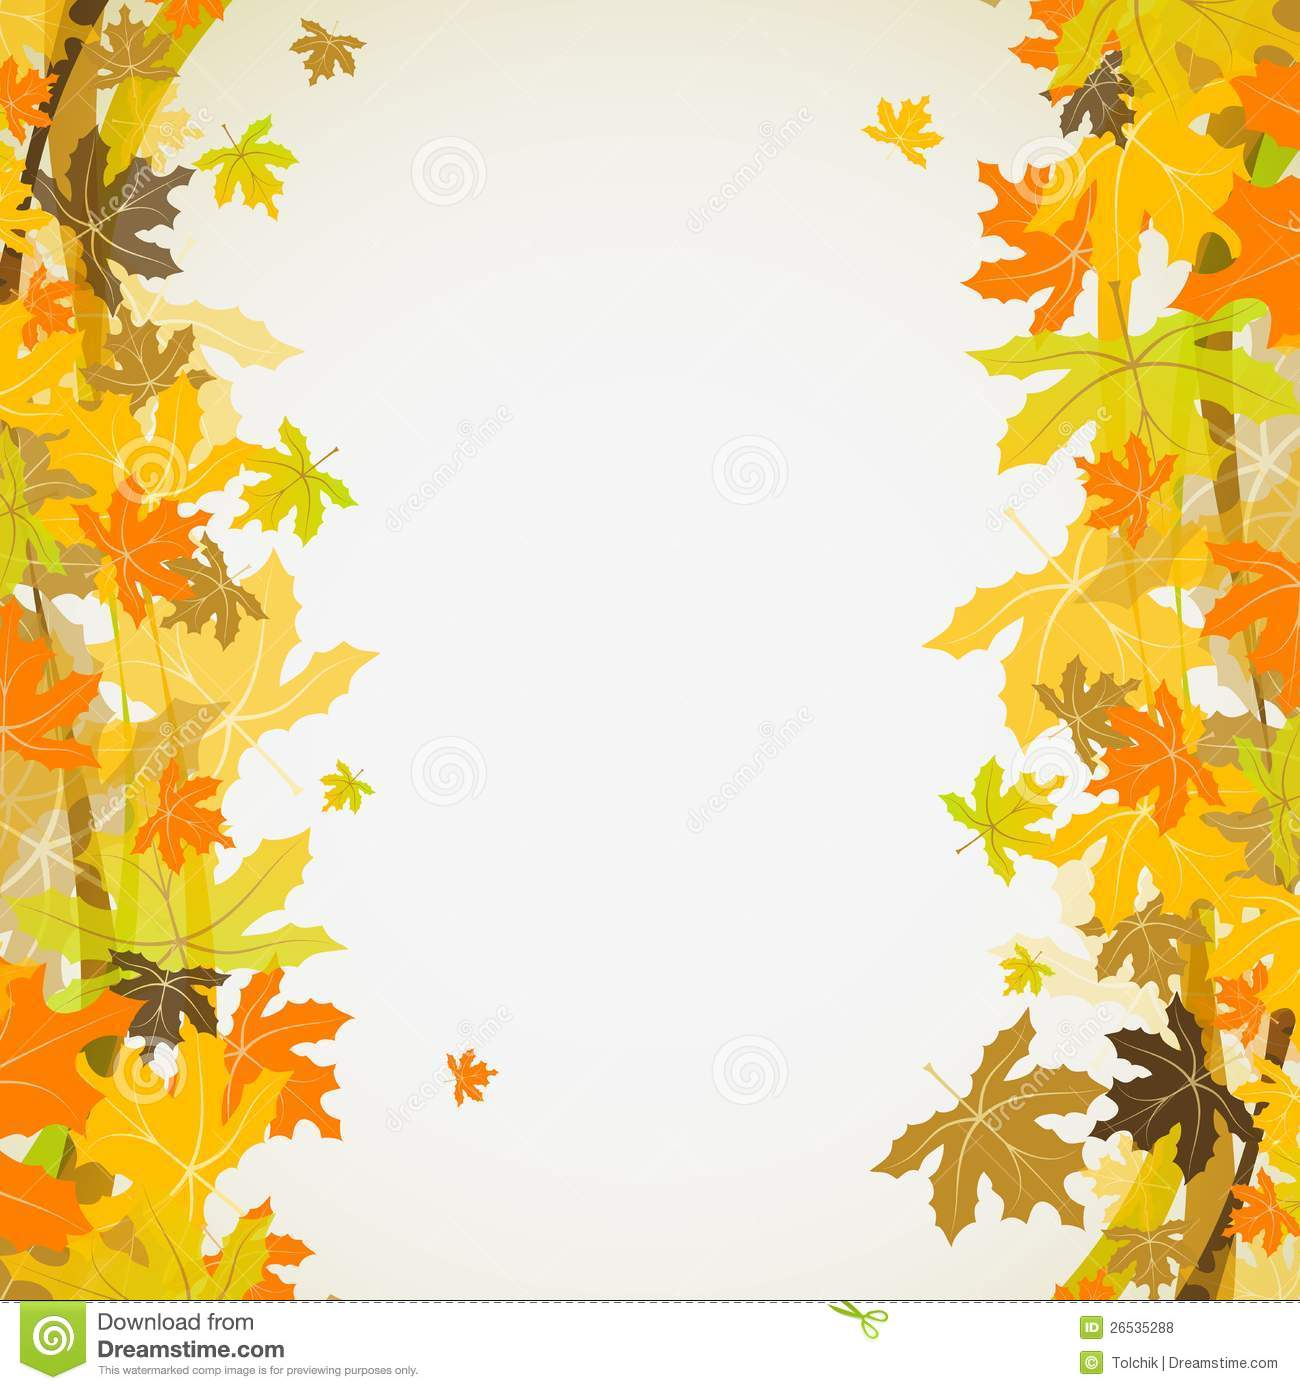 Fall background free clipart - ClipartFest